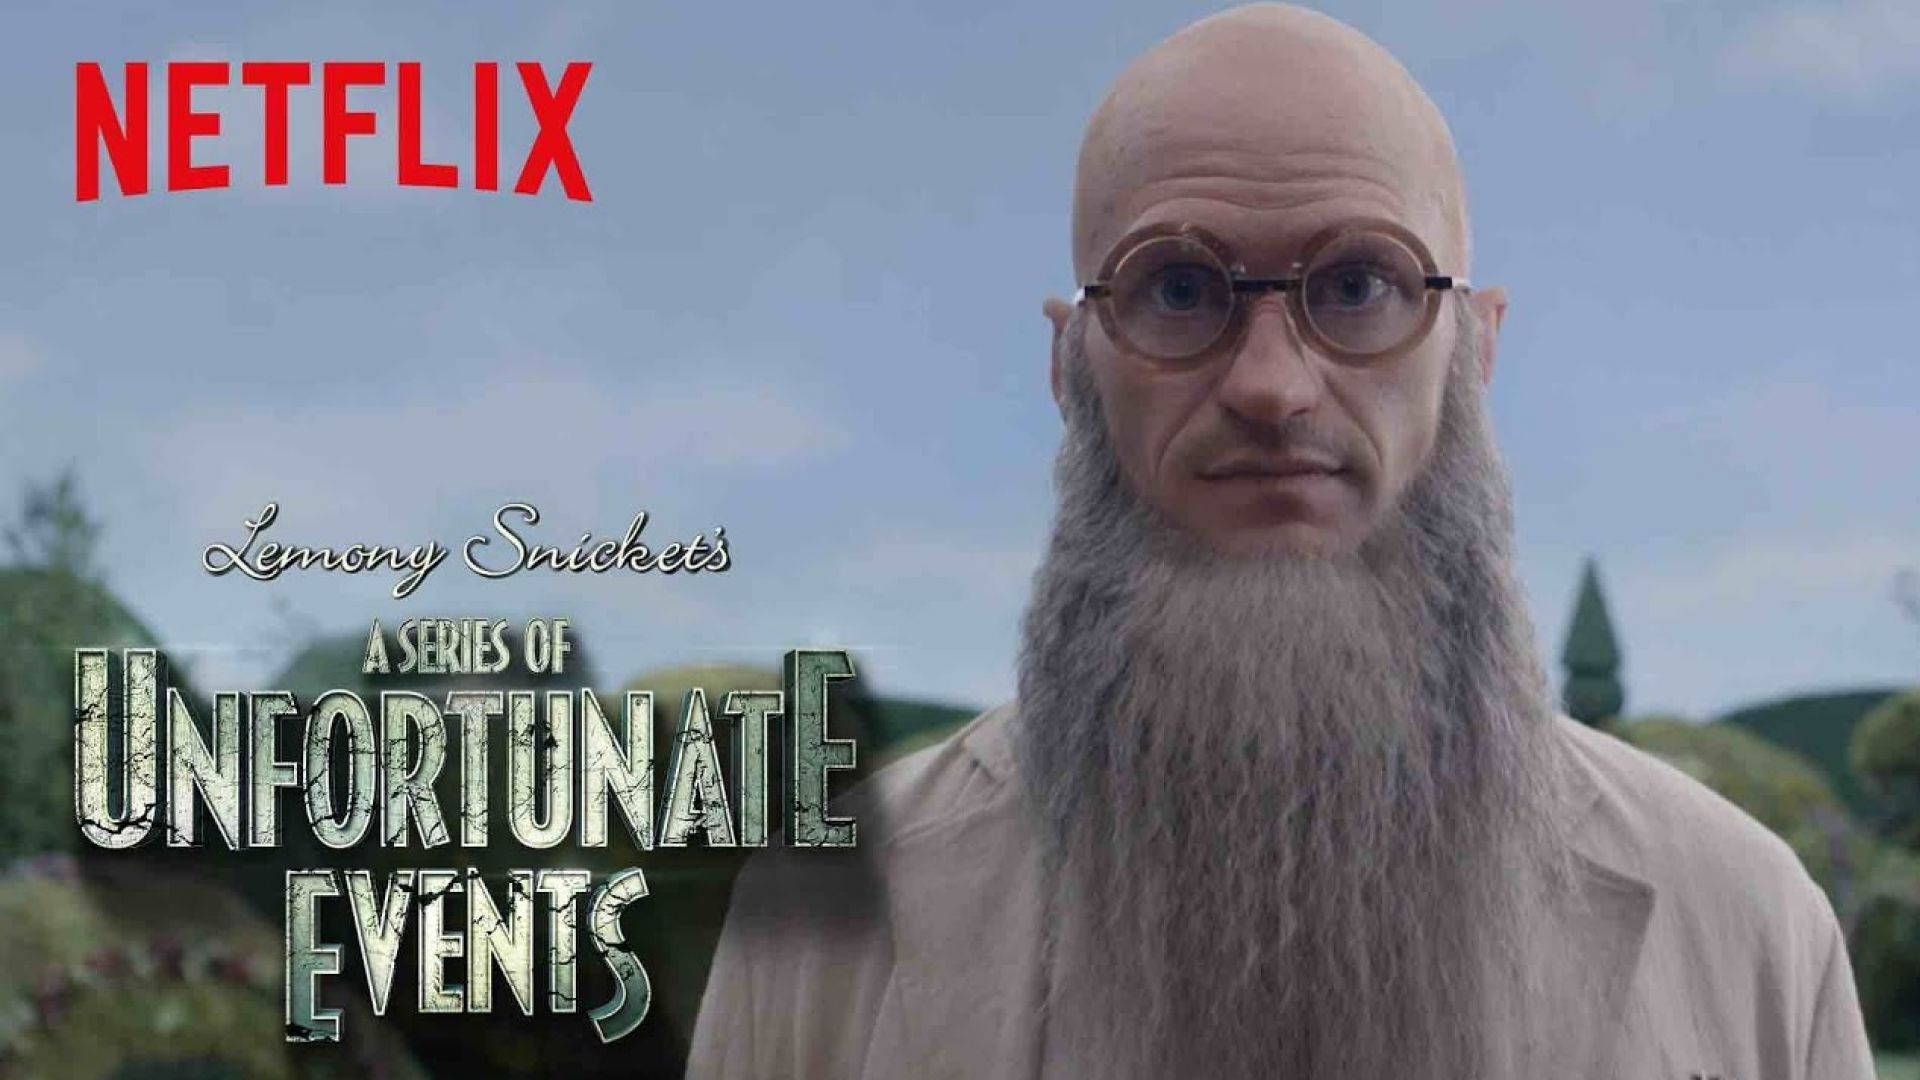 Take a closer look at A Series of Unfortunate Events with th